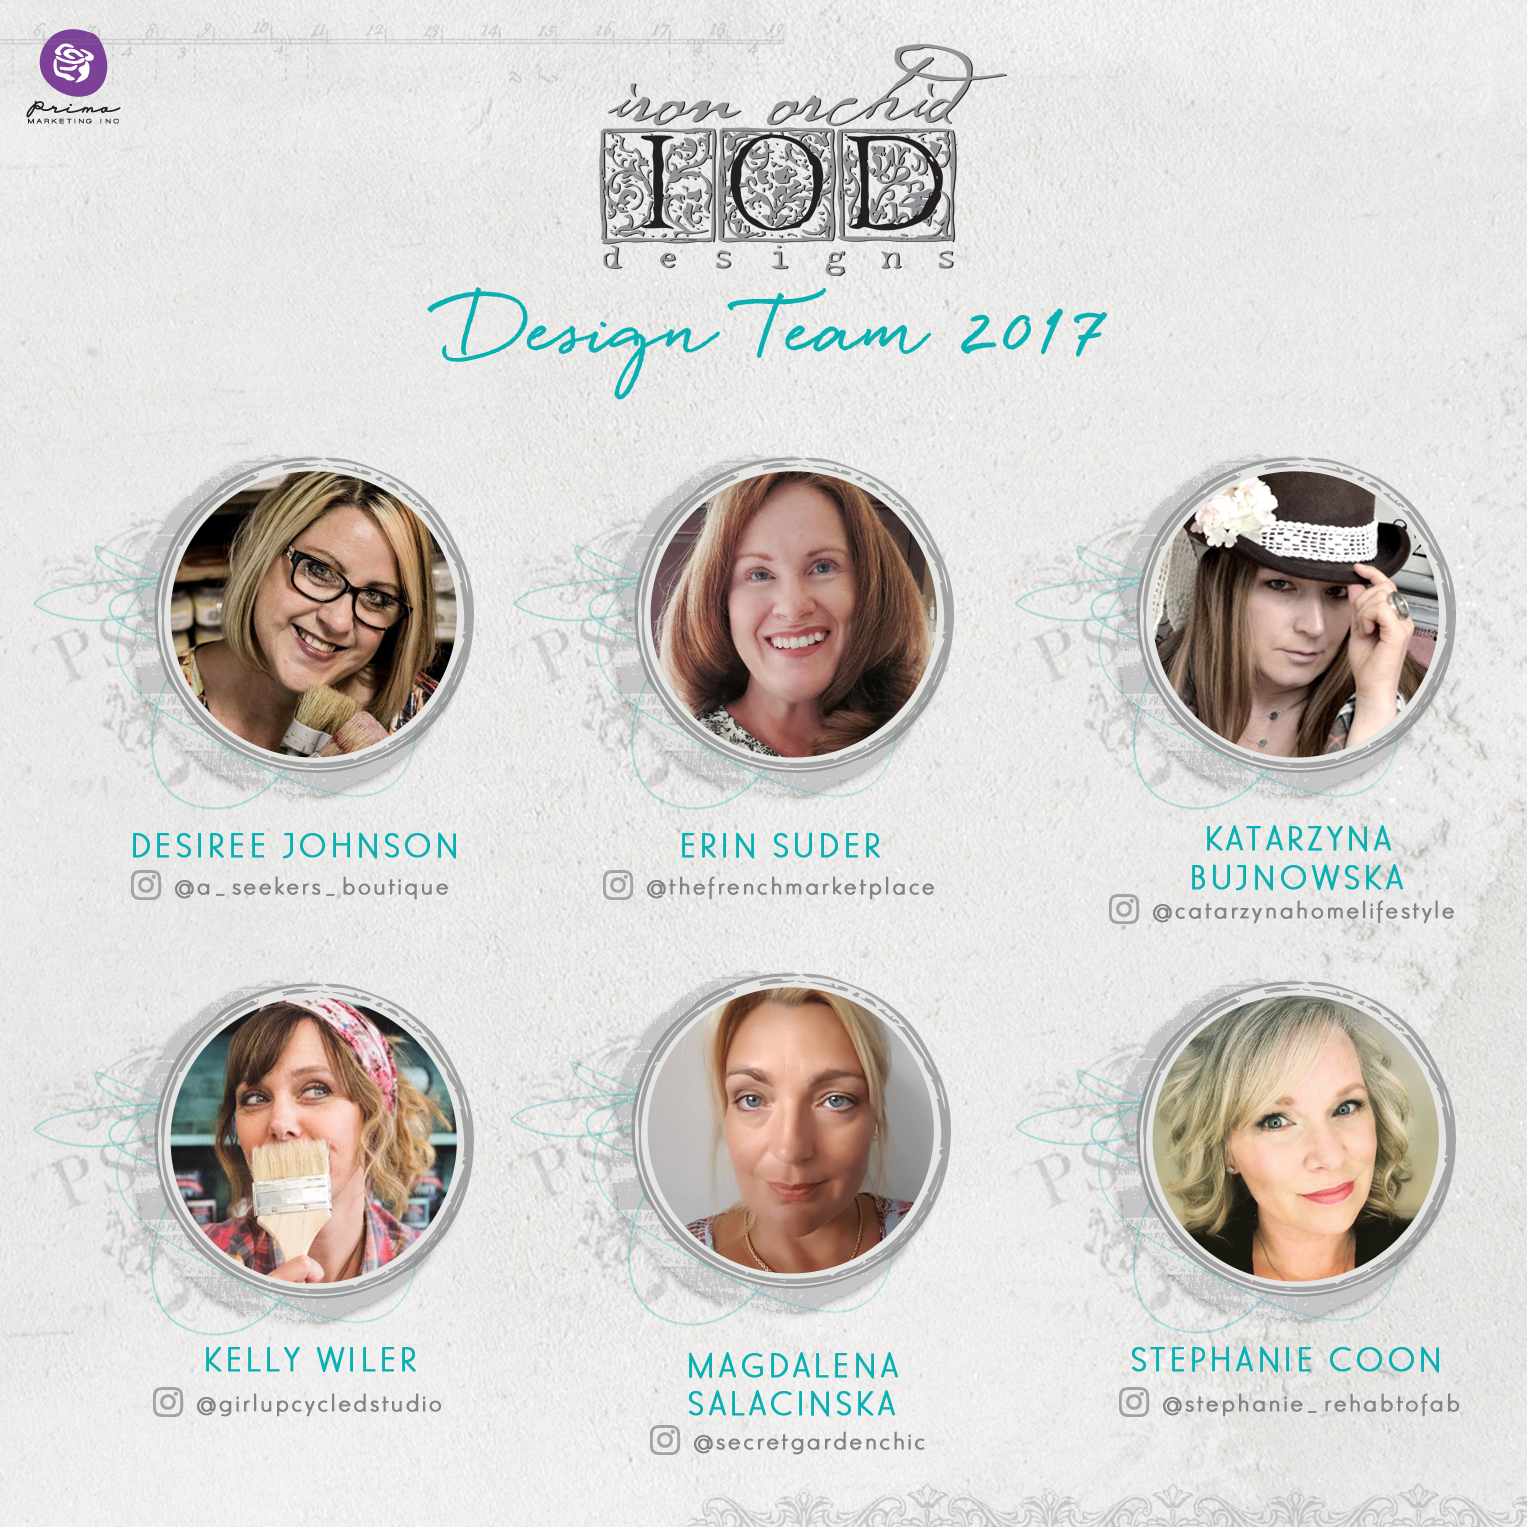 We are so excited to announce our wonderful team of home decor experts, that are ready to inspire and educate our DIY fans!